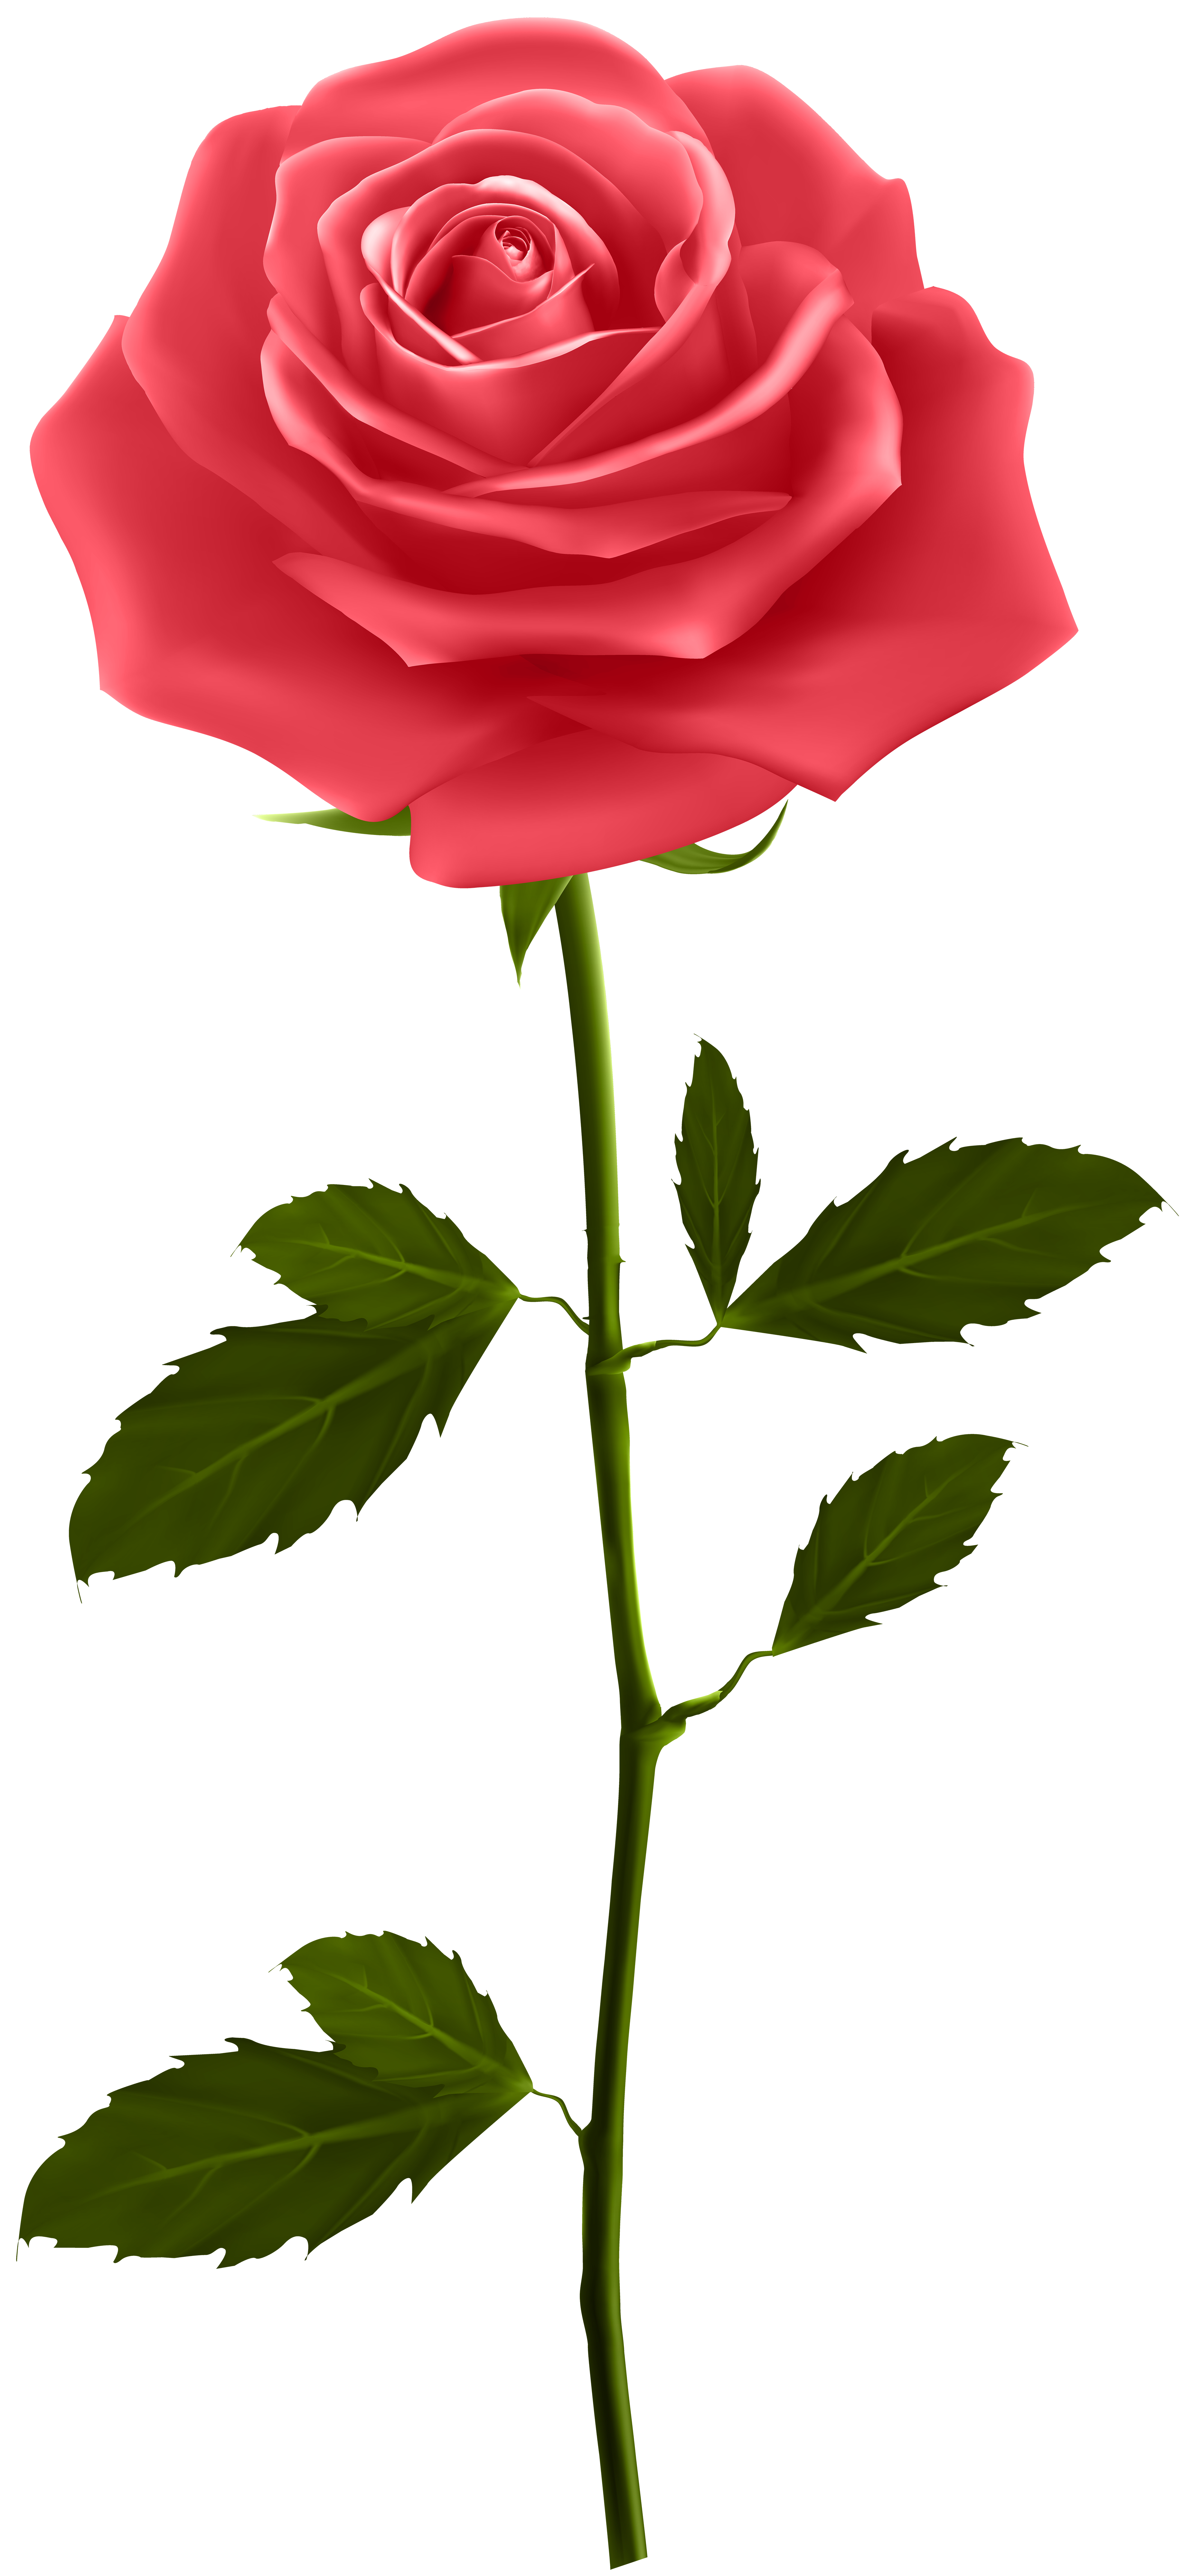 free stock High clipart. Red rose with stem